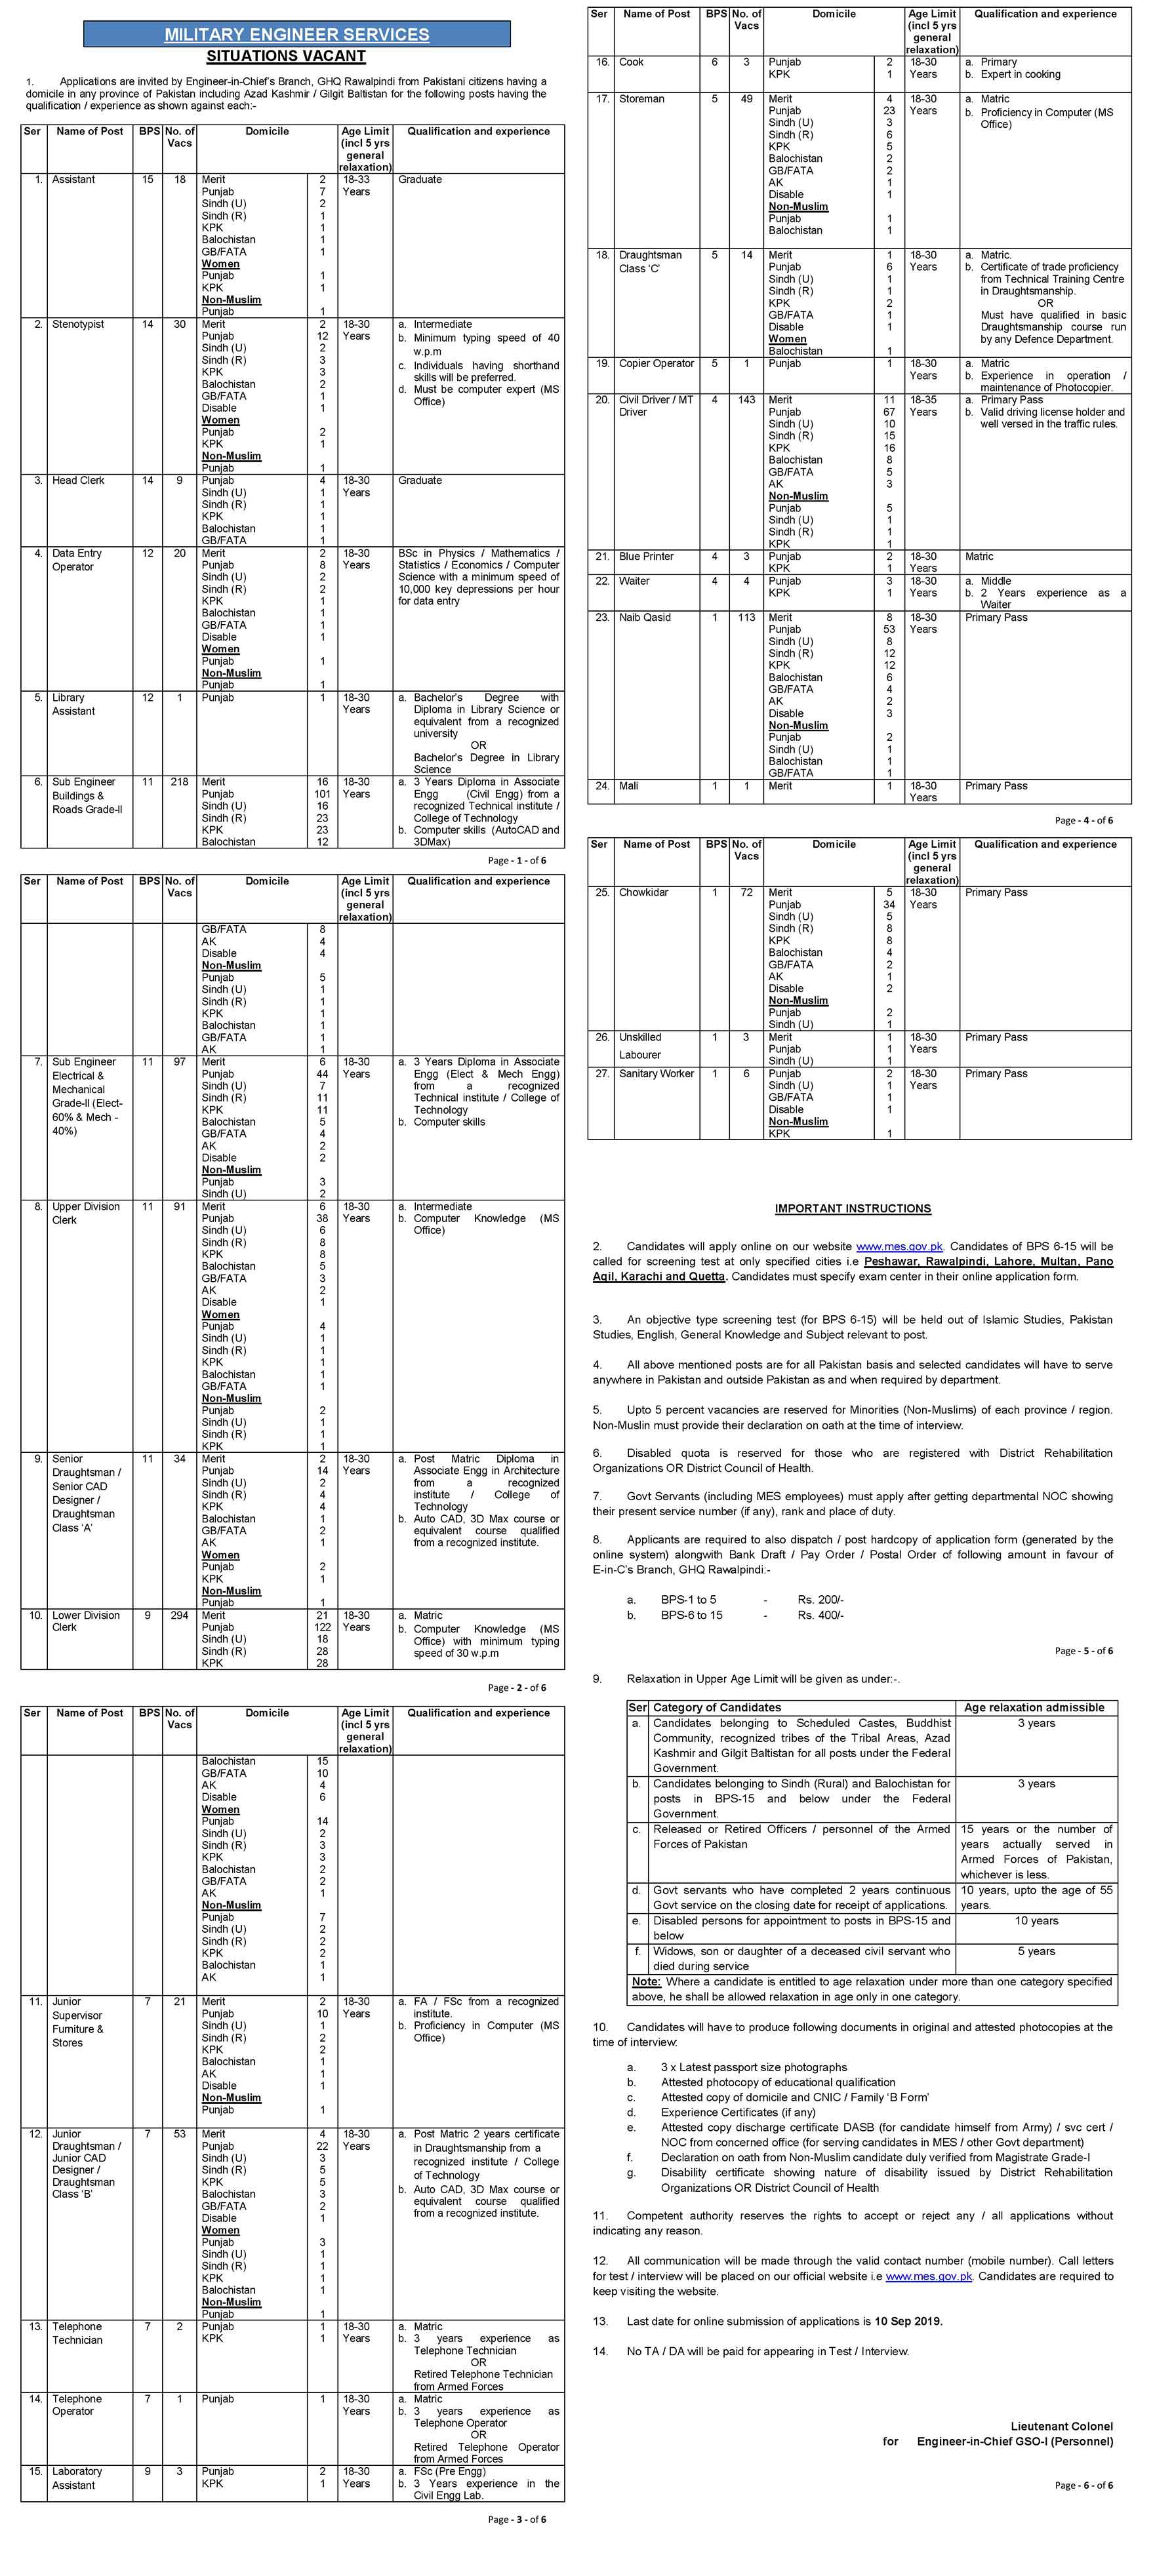 Jobs In Military Engineer Services Pakistan MES 01 Sep 2019